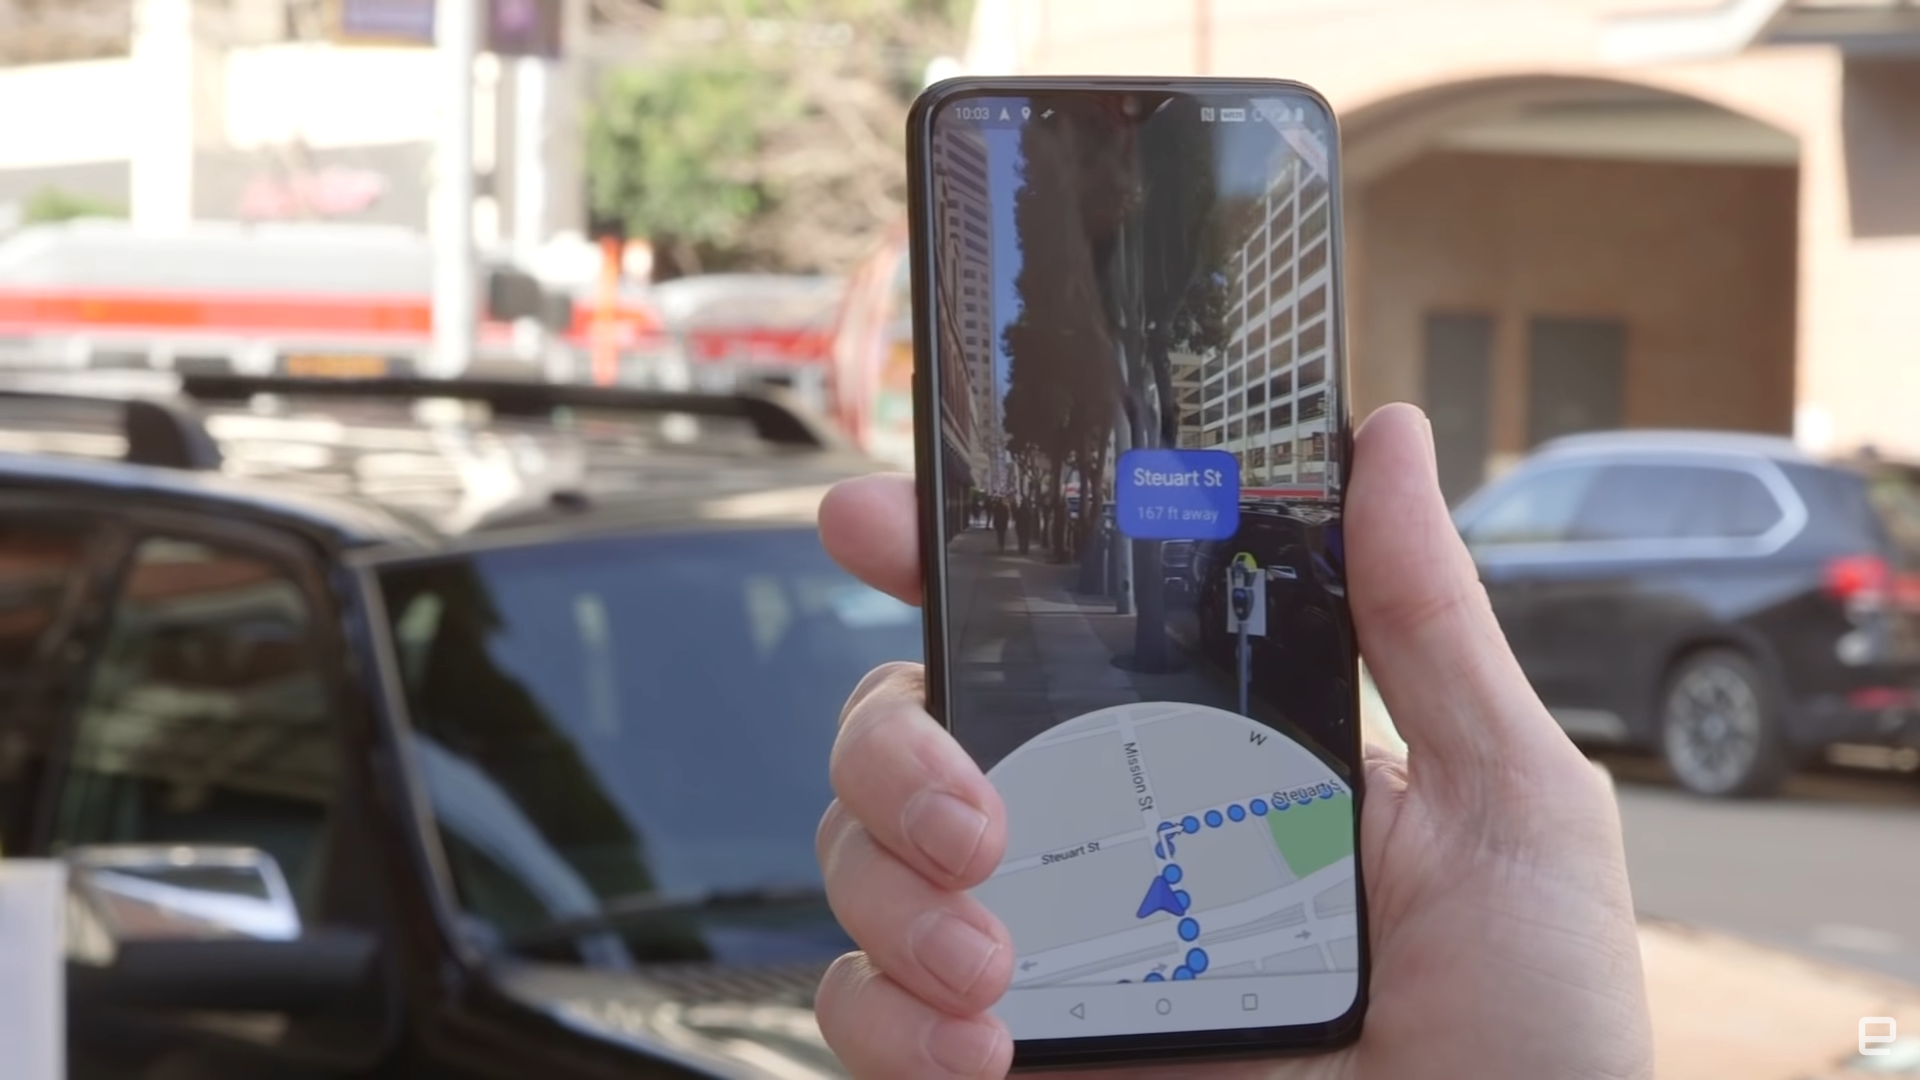 Introducing Google Maps AR - A Fancy Way To Navigate or Get